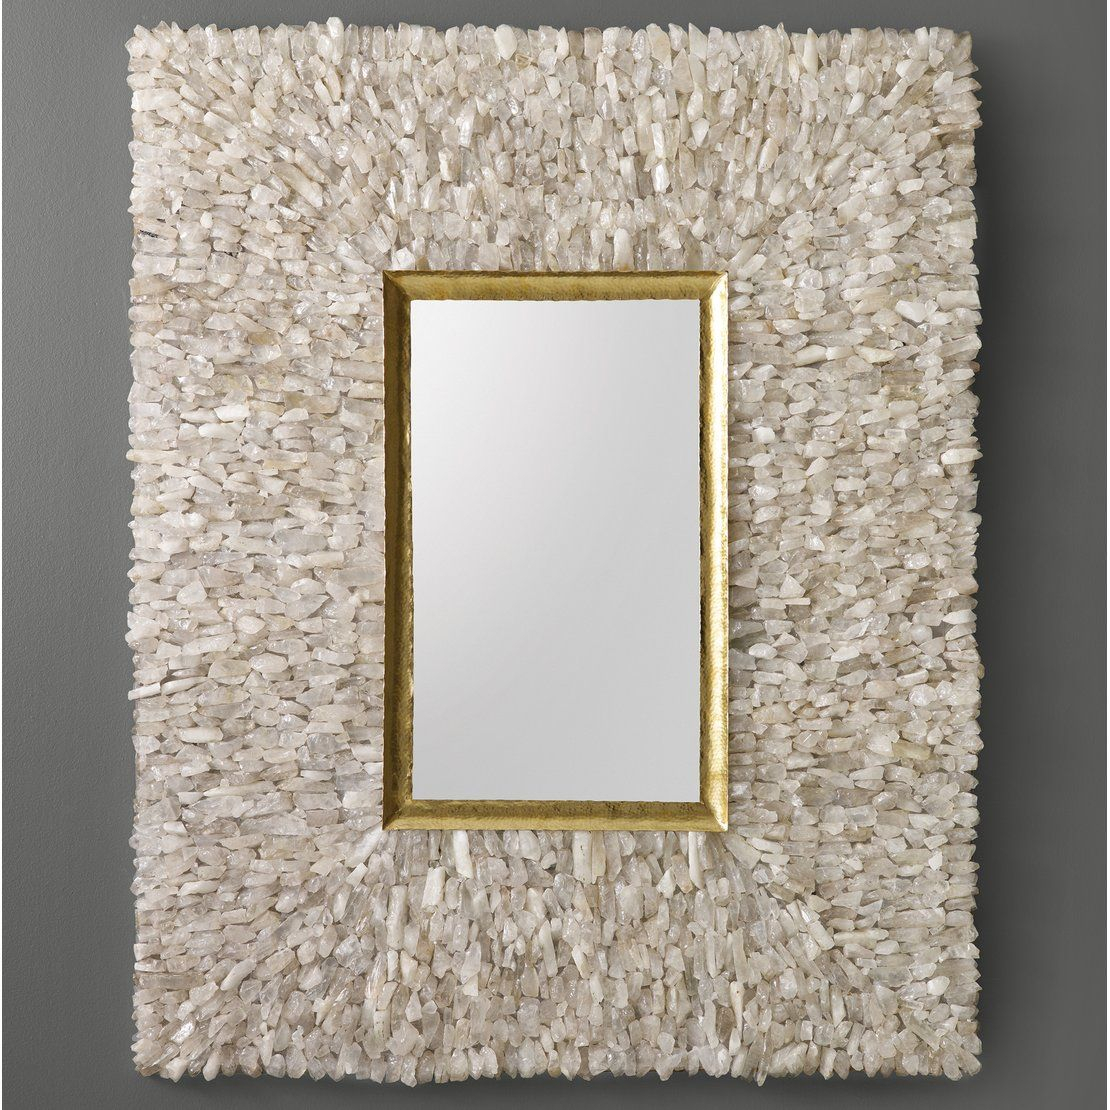 Neoteric Crystal Wall Mirror Glitz Floral Modern Rectangle Inside Sajish Oval Crystal Wall Mirrors (View 10 of 20)